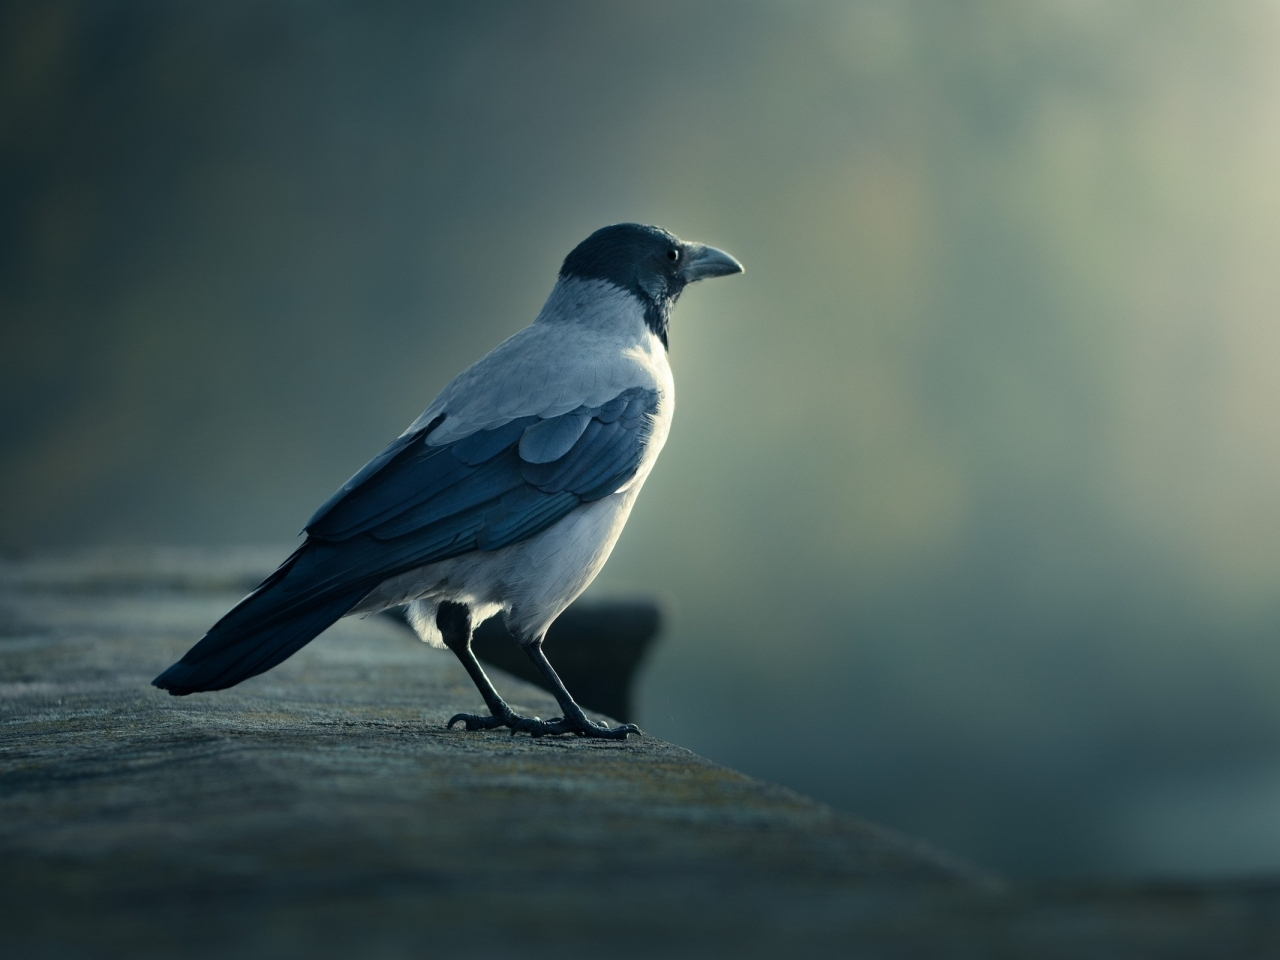 15686 download wallpaper Animals, Birds, Crows screensavers and pictures for free